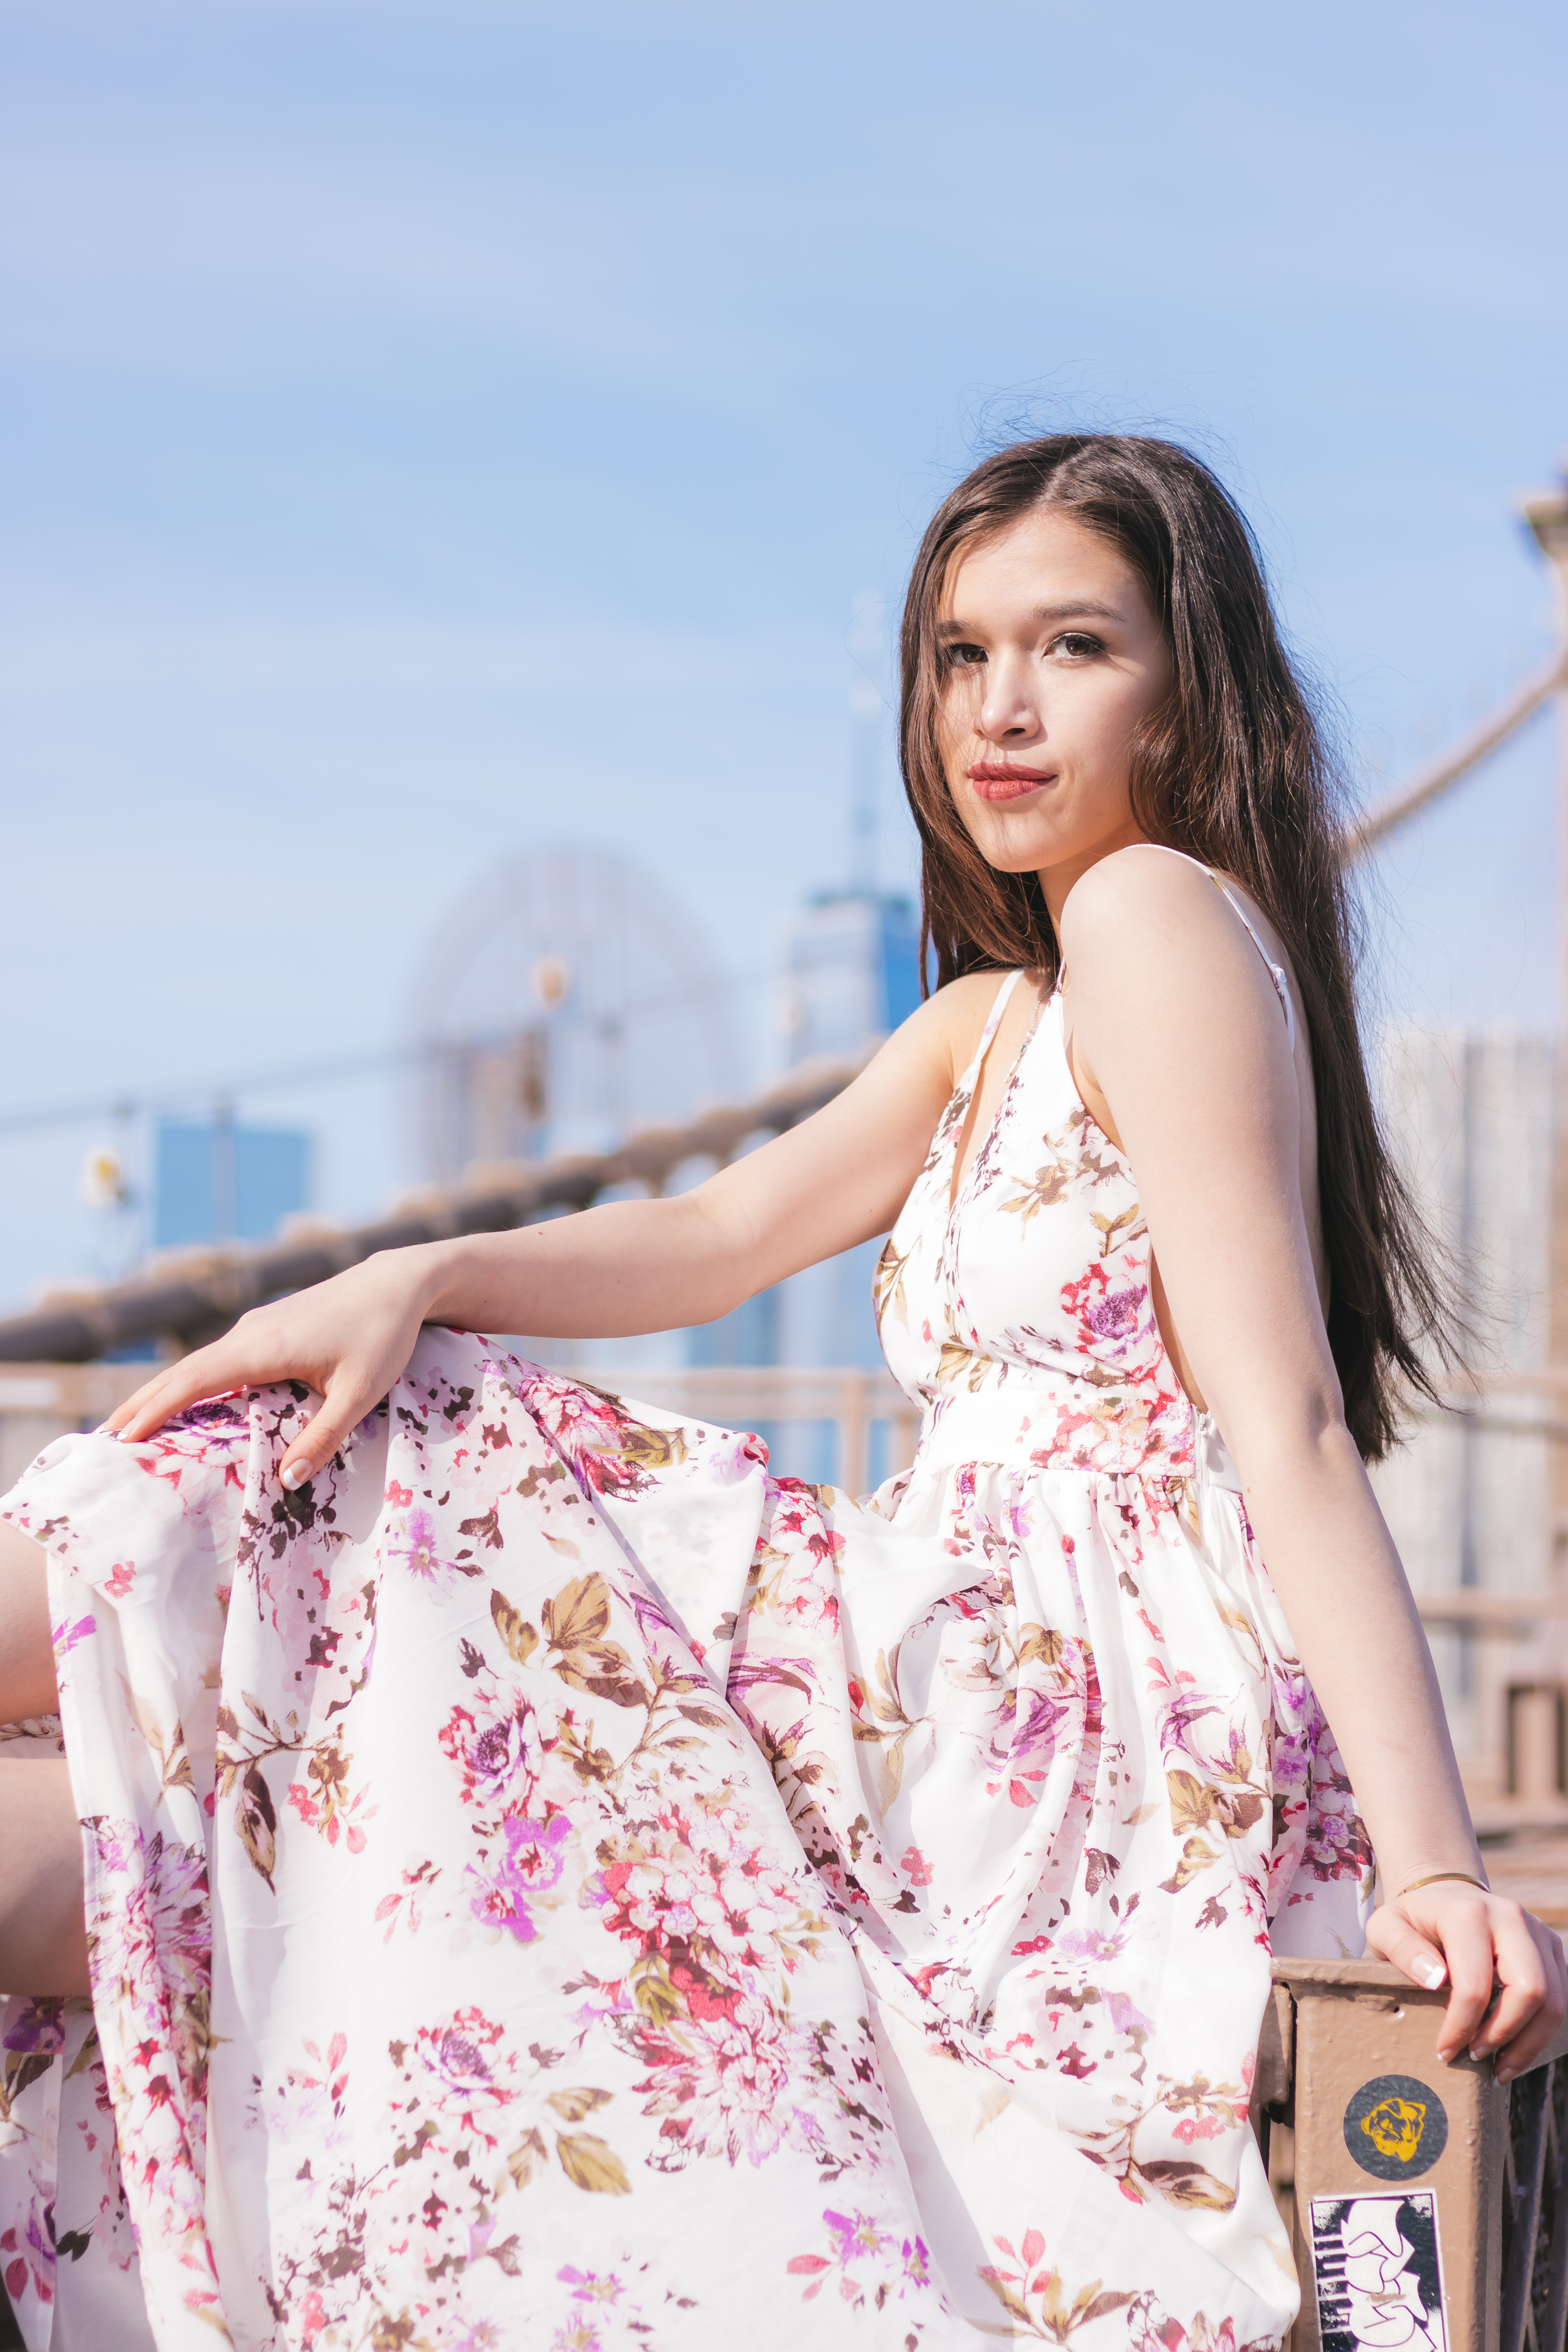 girl woman teenager with long brown hair stilling on the brooklyn bridge with a view of manhattan one world trade center freedom tower in a floral maxi dress backless gown